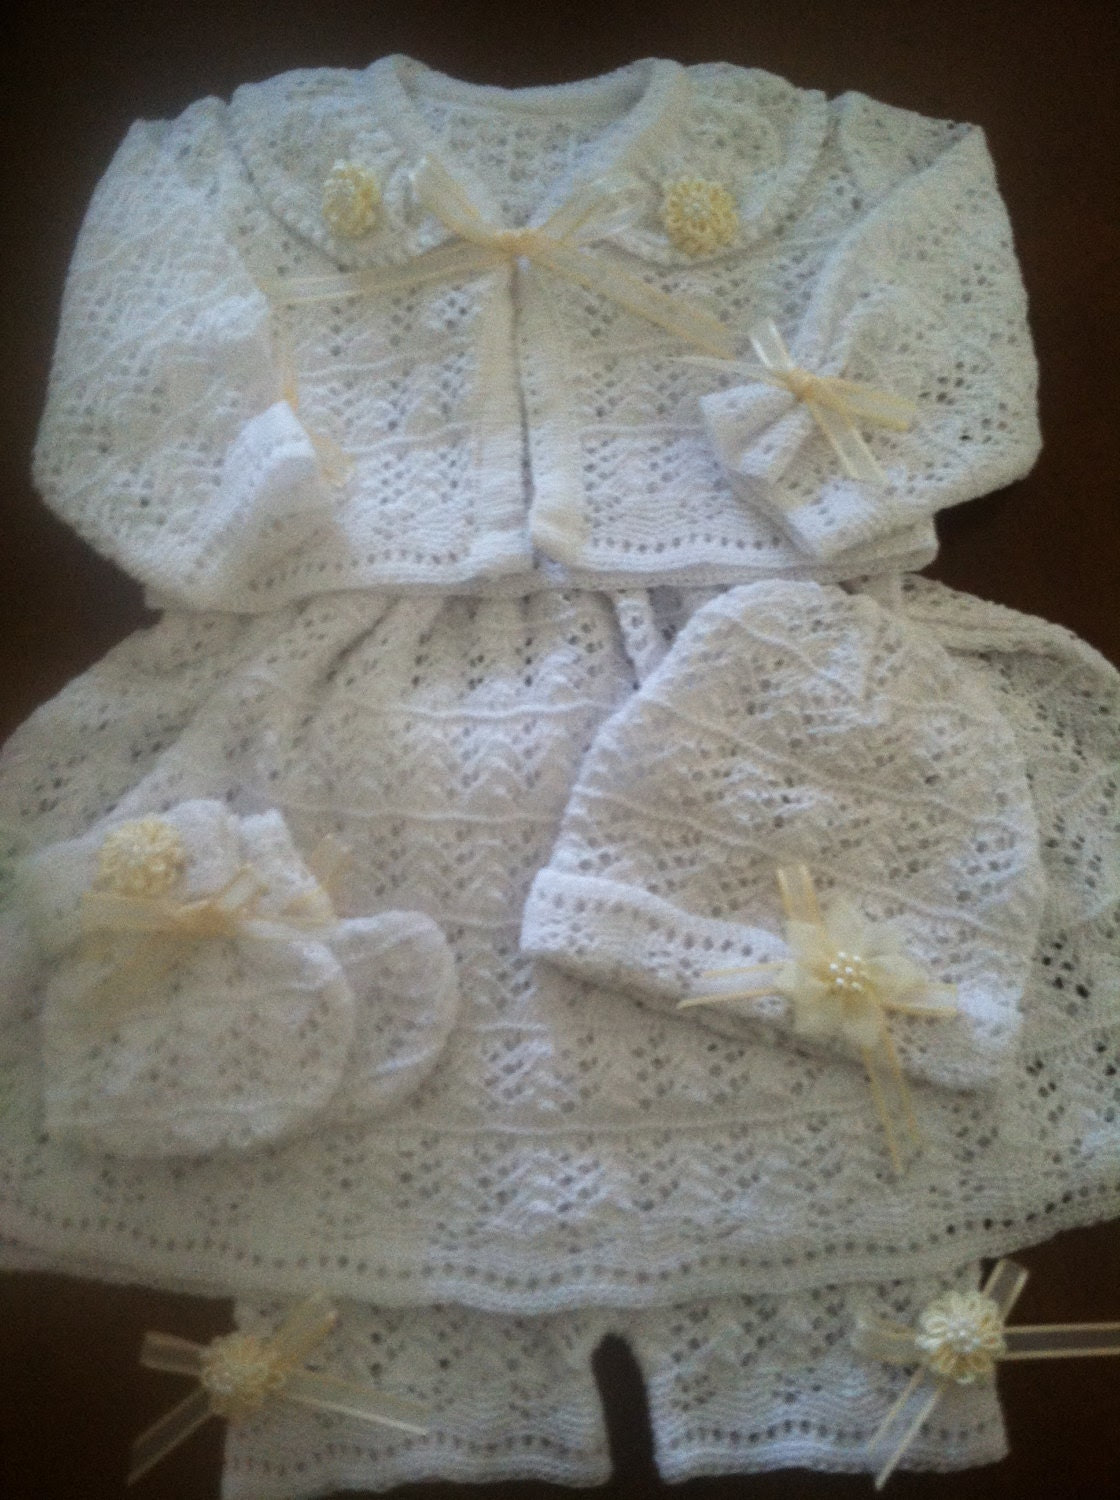 Baby Girl Dress 5 Pcs Outfit Set perfect for Baptism Christening newborn gift or Easter